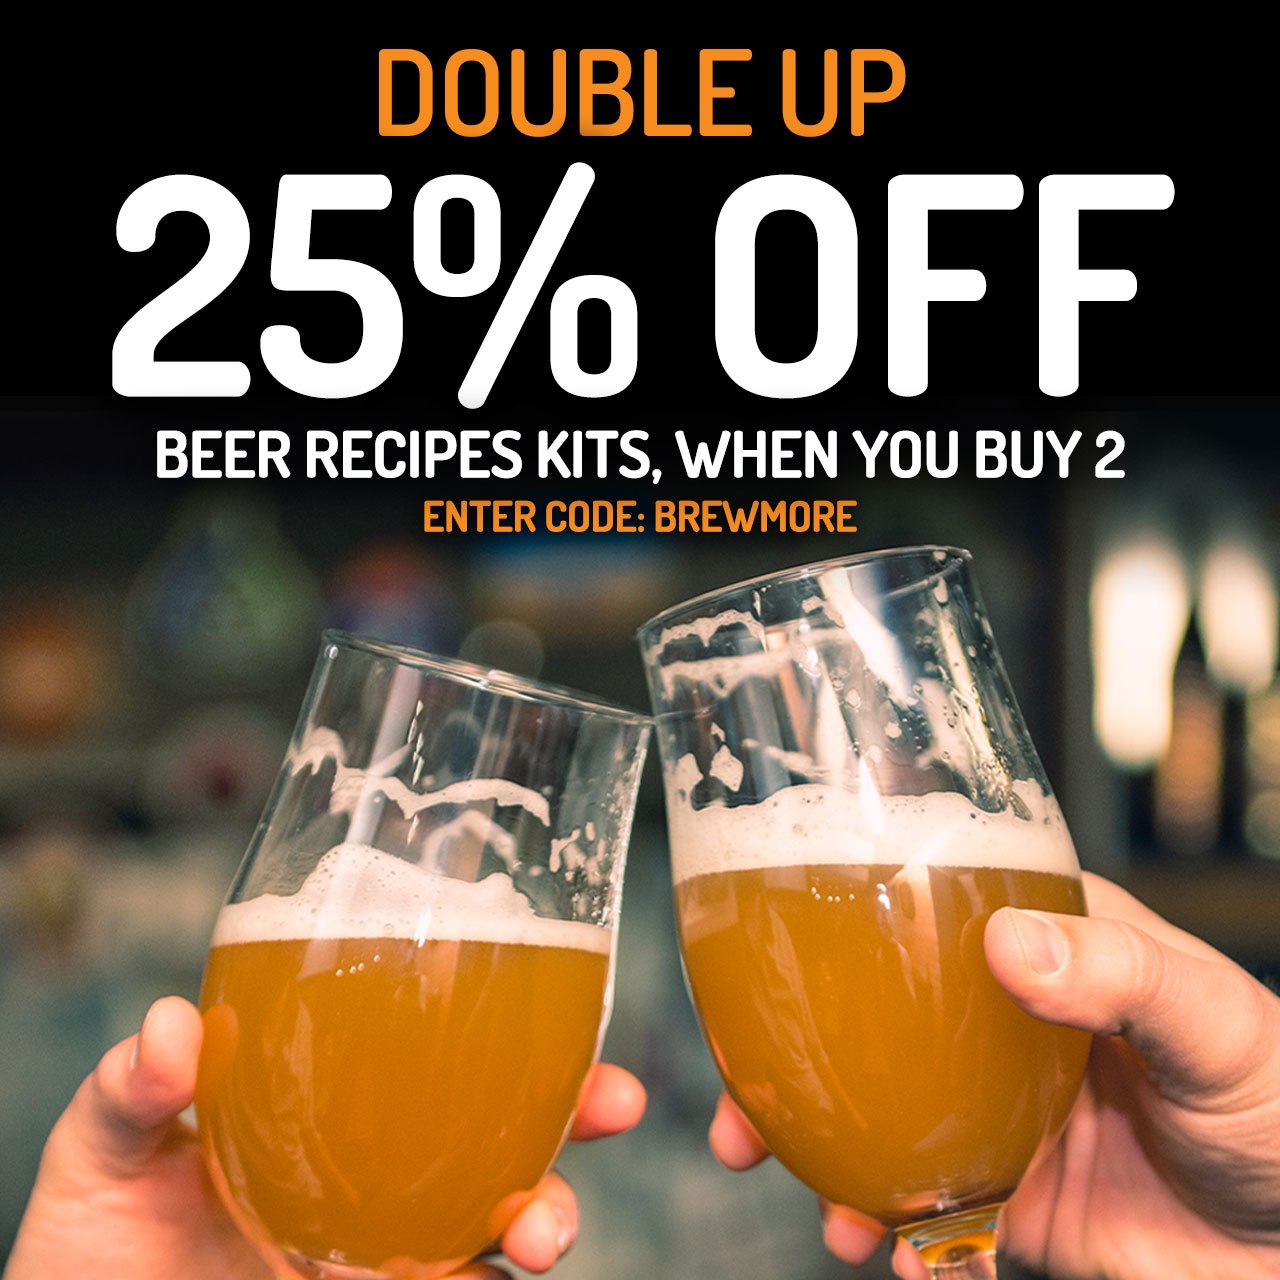 25% Off Beer Recipe Kits When You Buy 2. Promo Code: BREWMORE